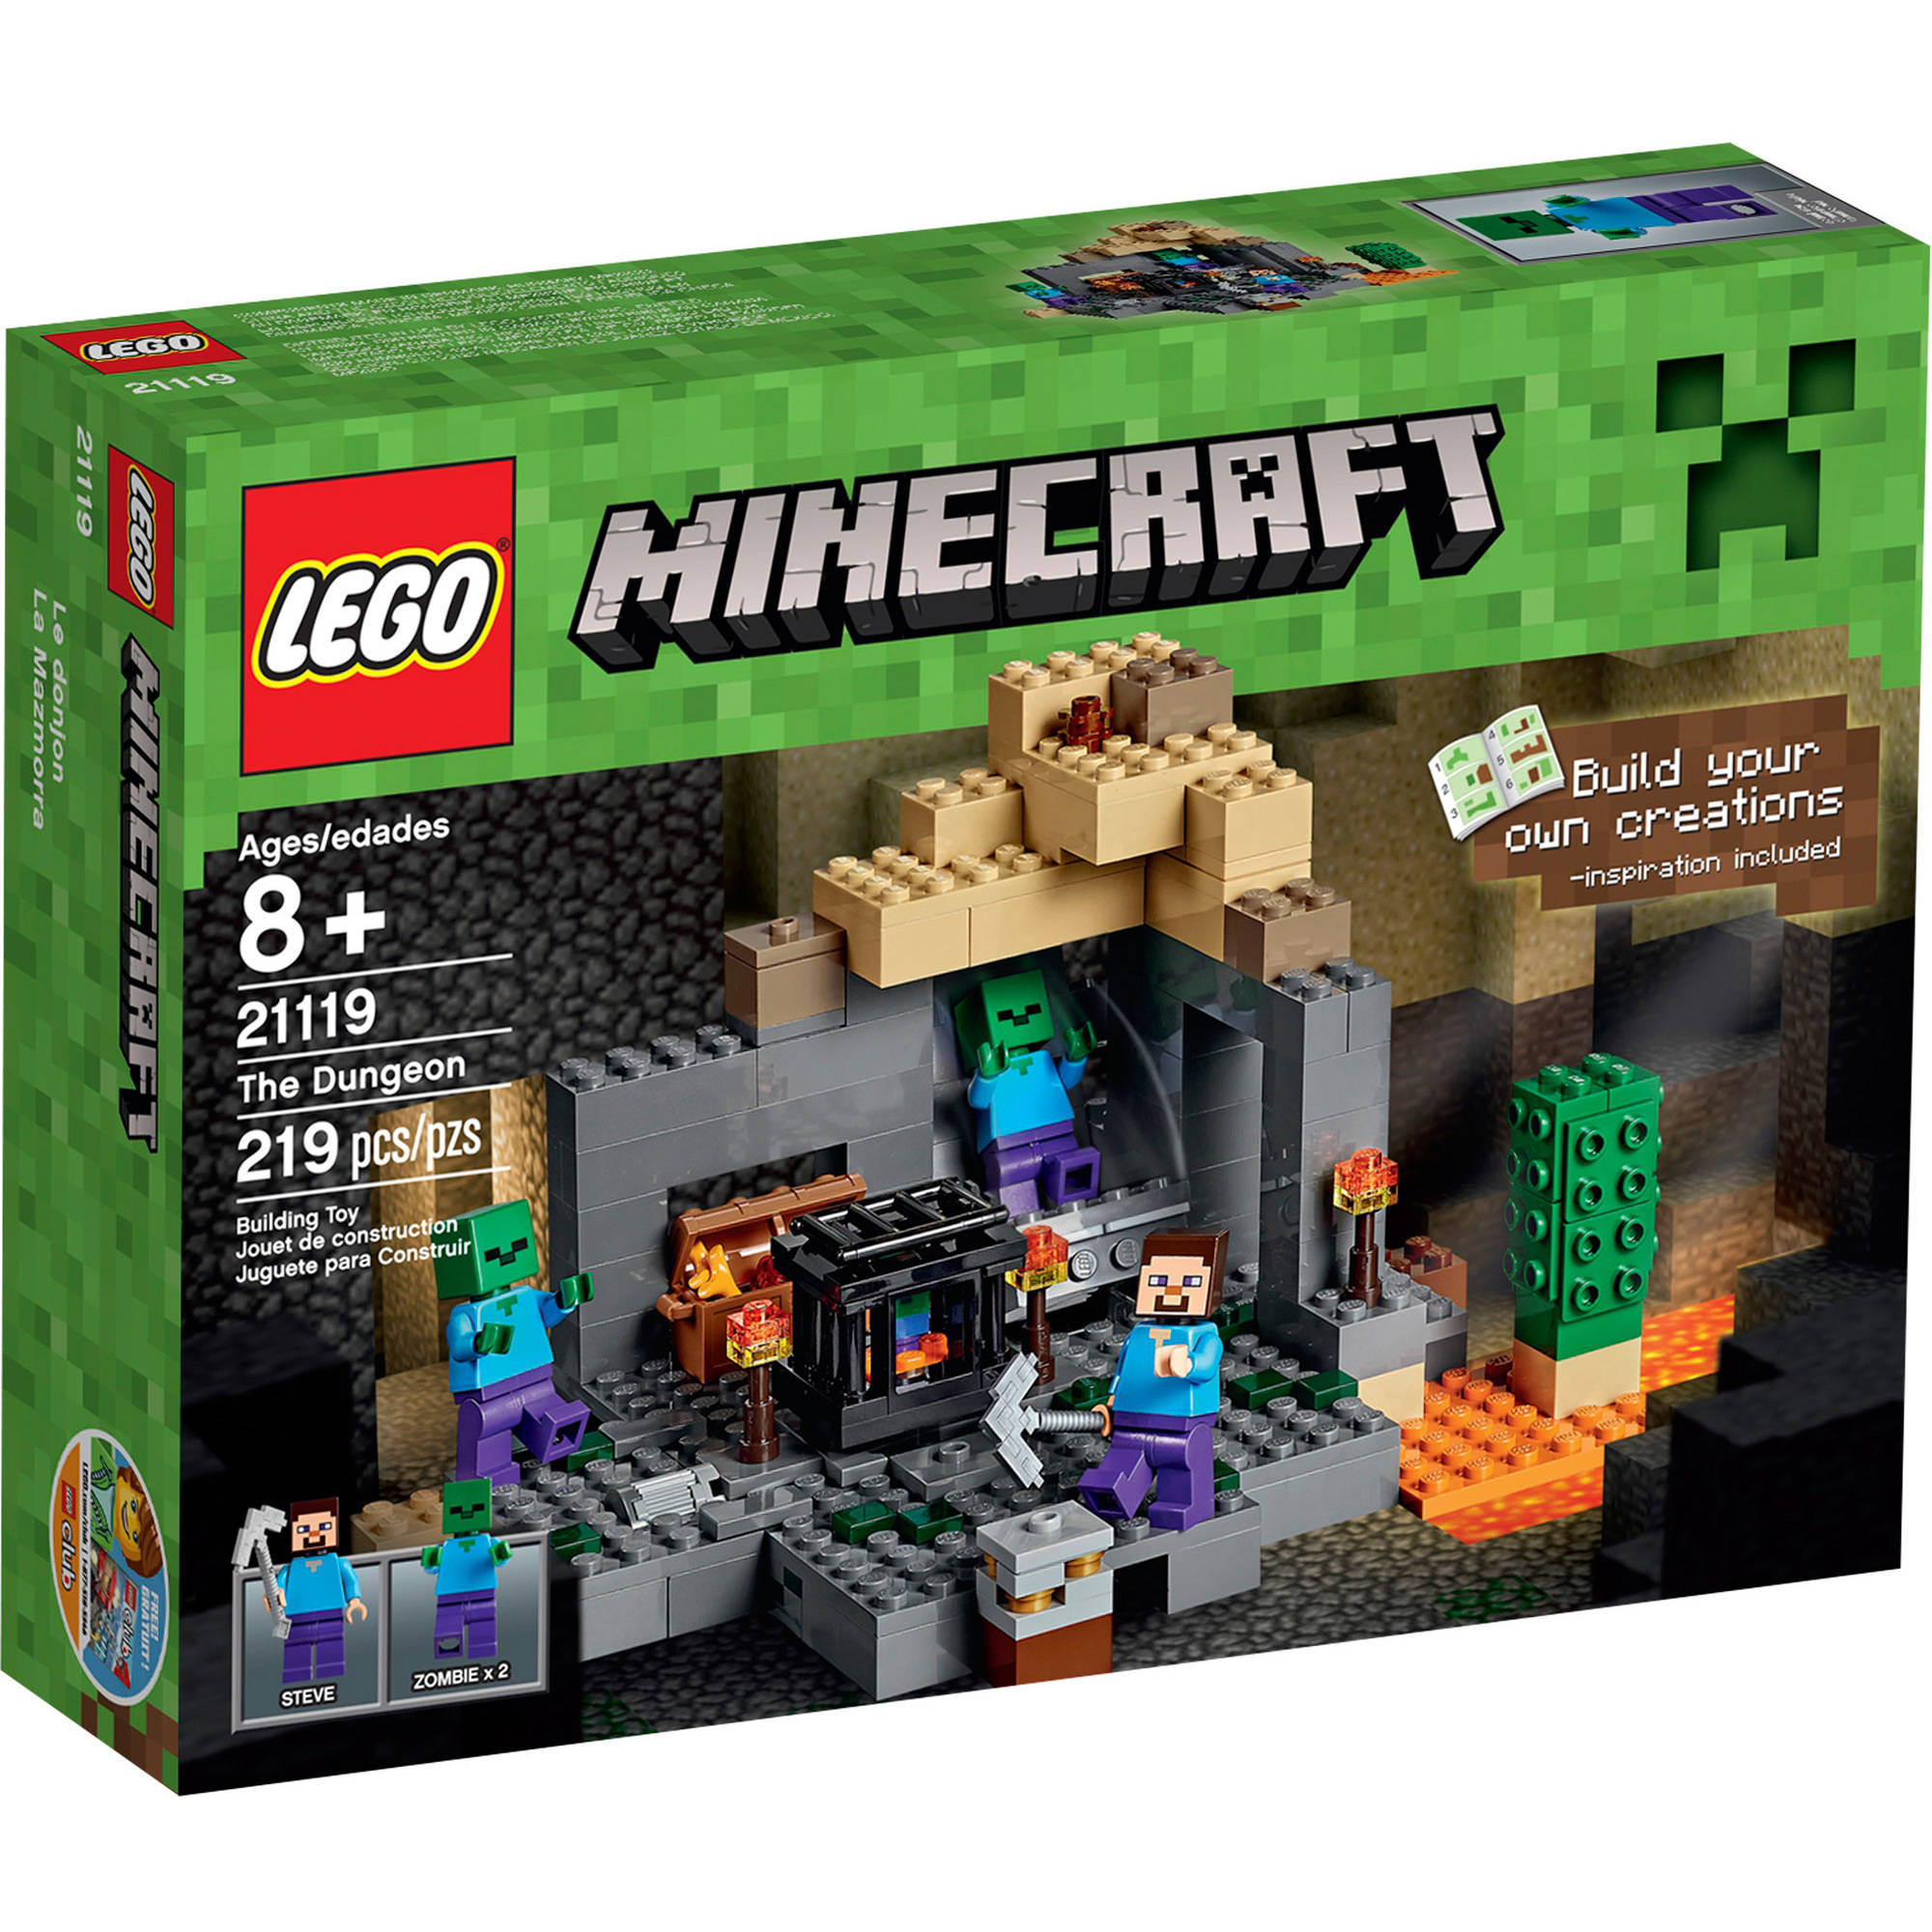 LEGO Minecraft The Dungeon, 21119